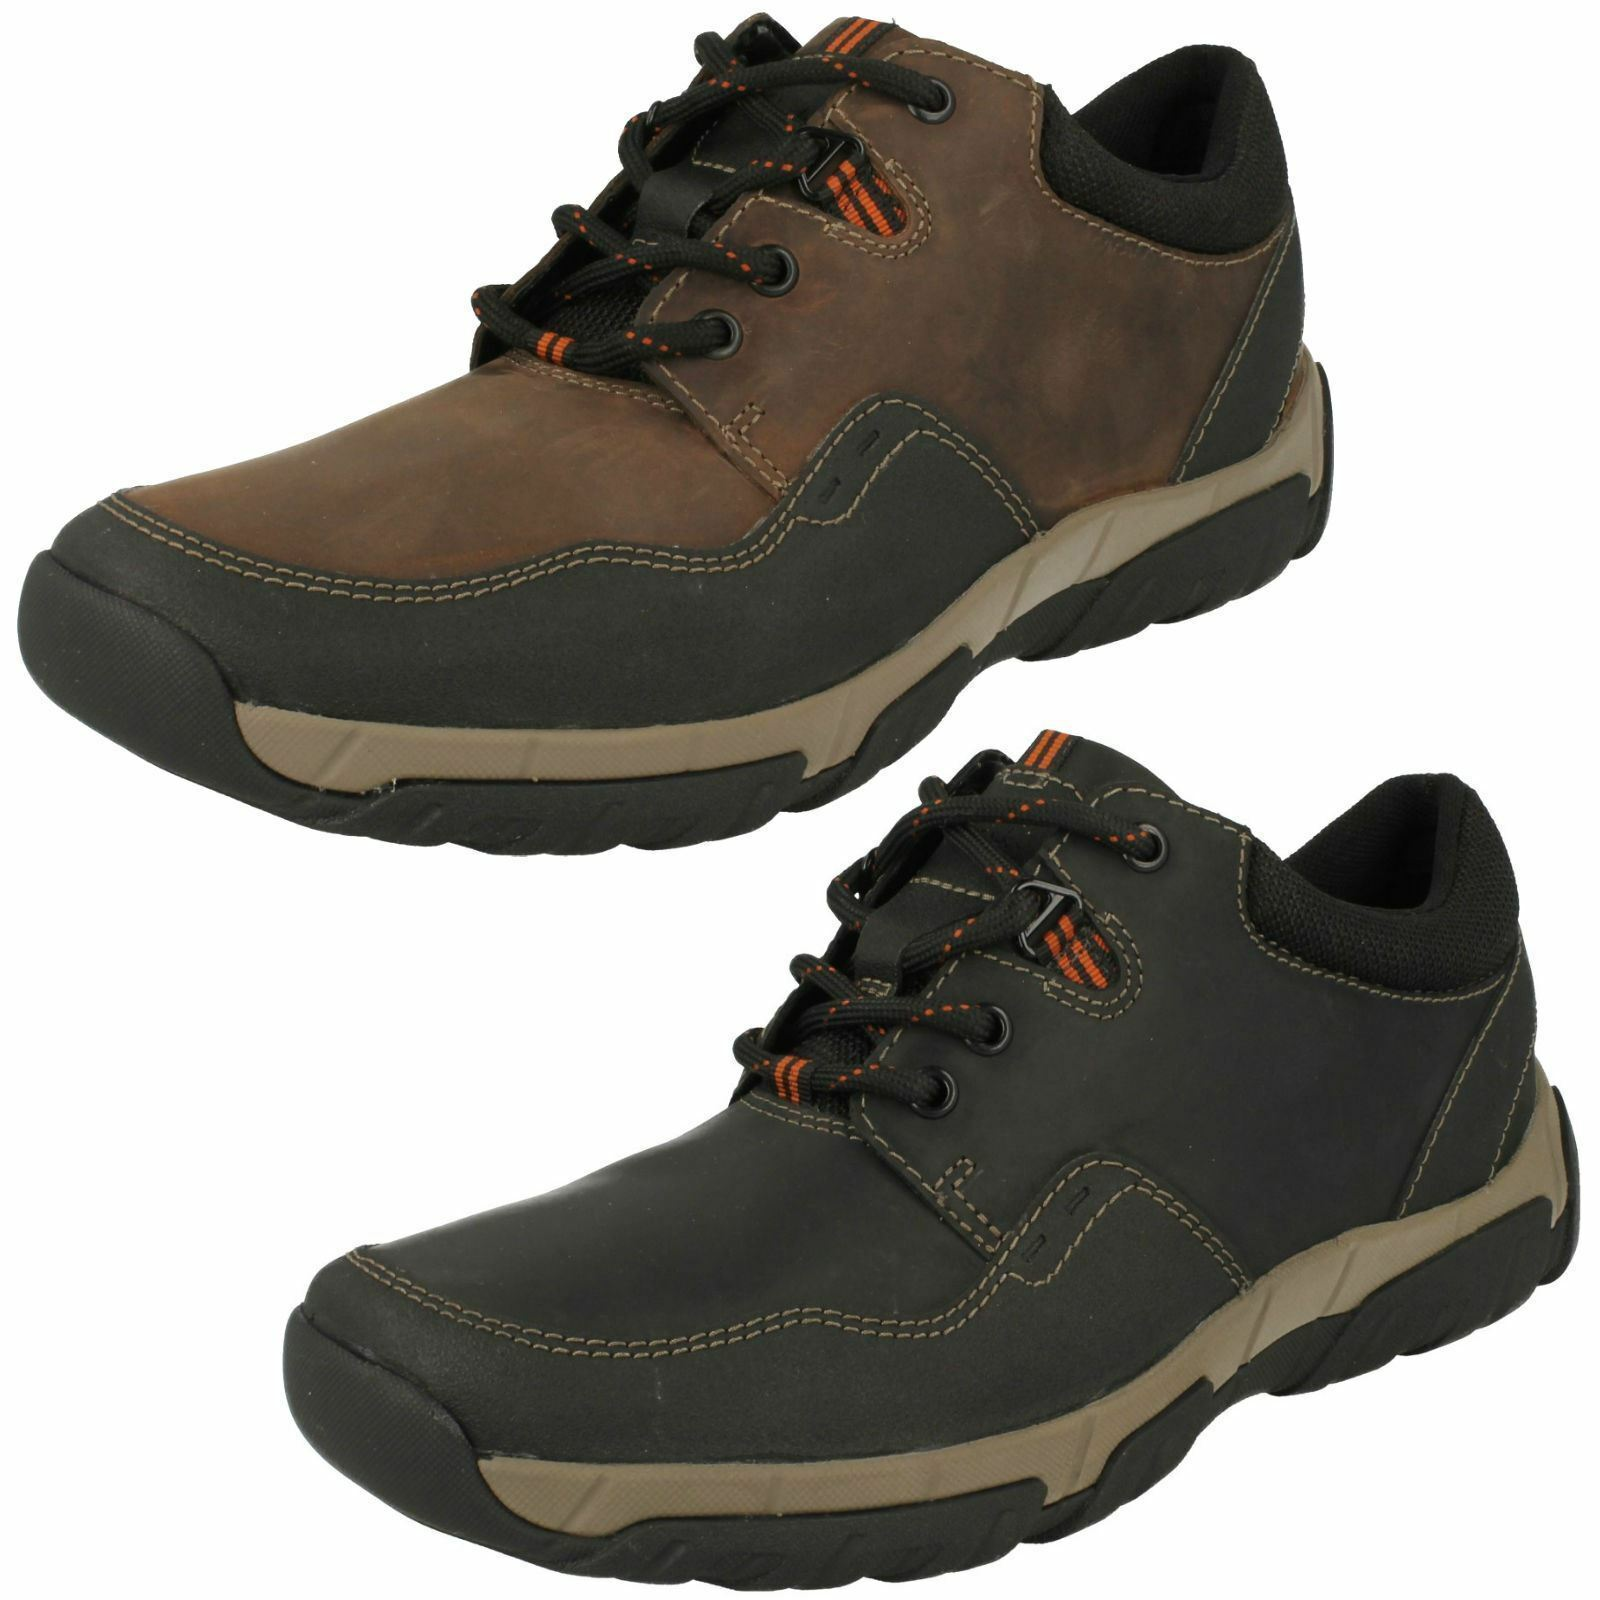 Clarks Hombre Impermeable Zapatos walbeck EDGE